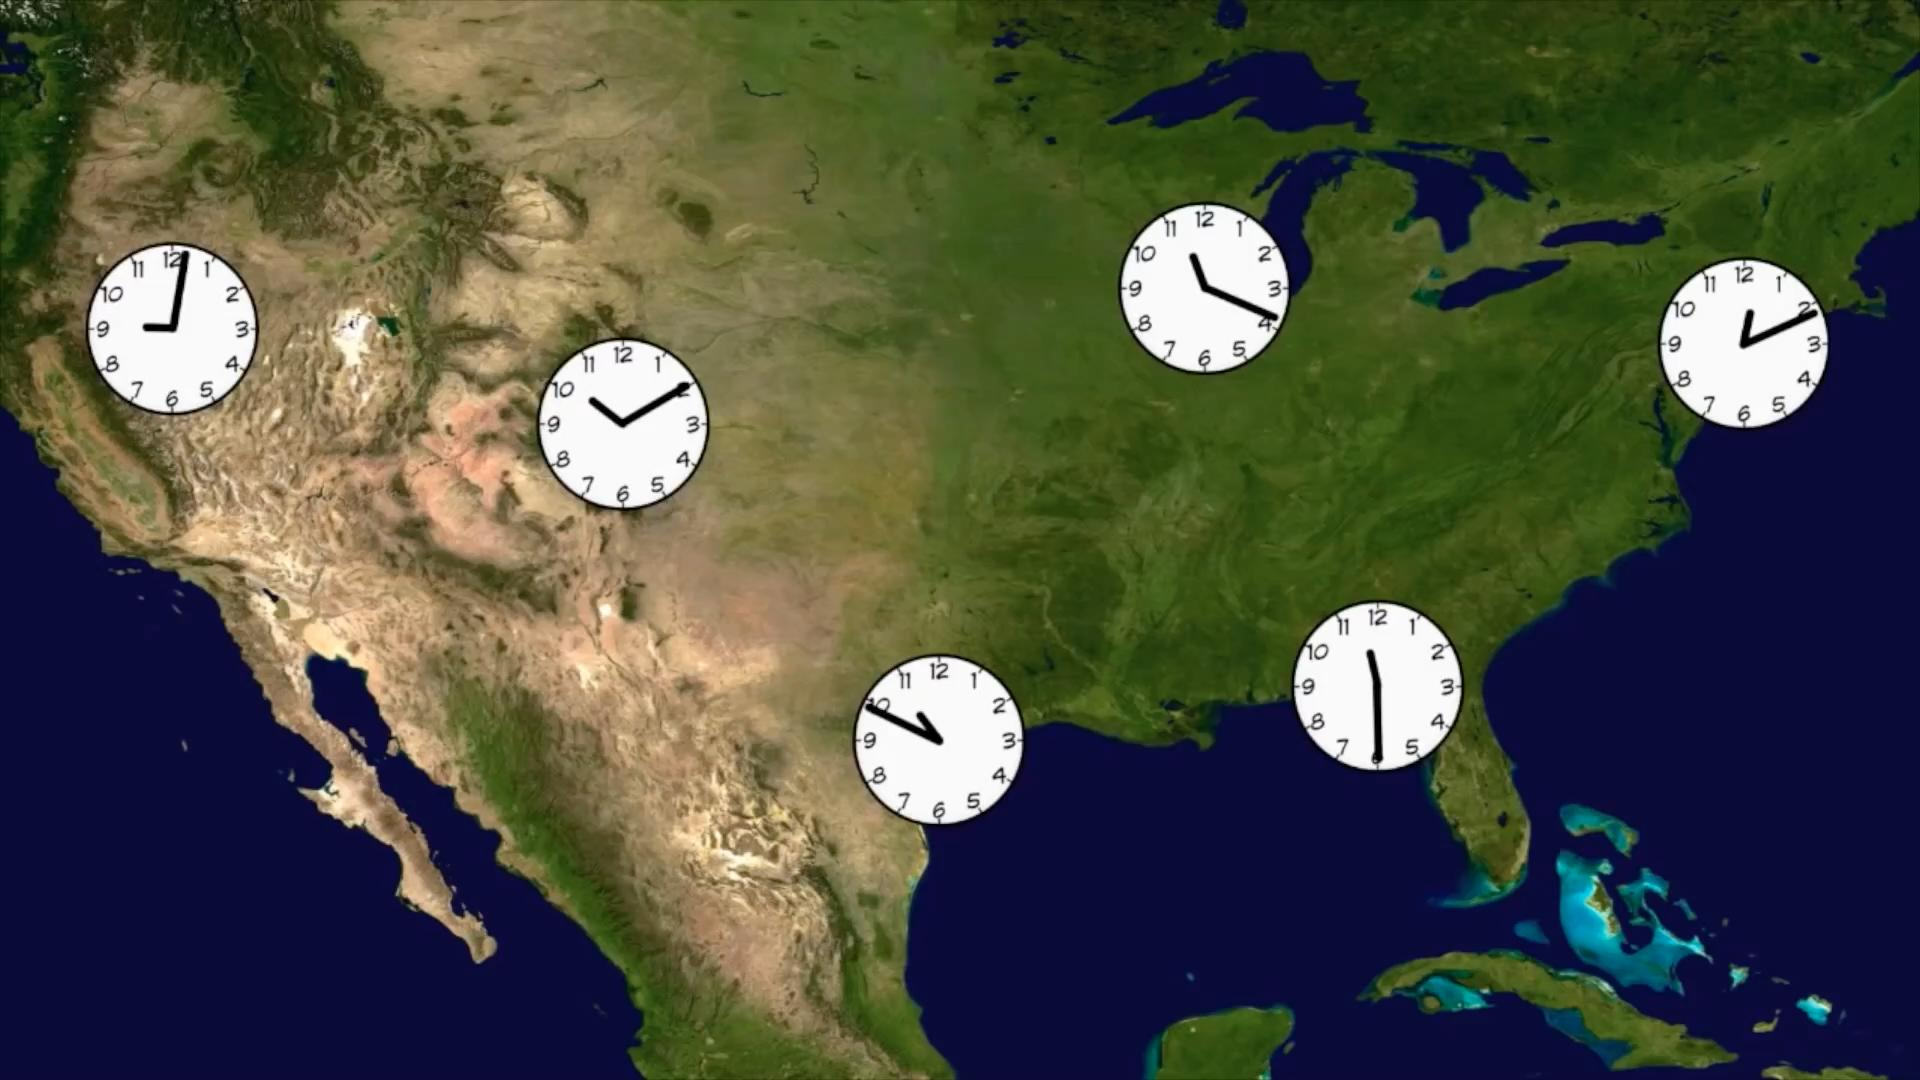 The radical plan to destroy time zones